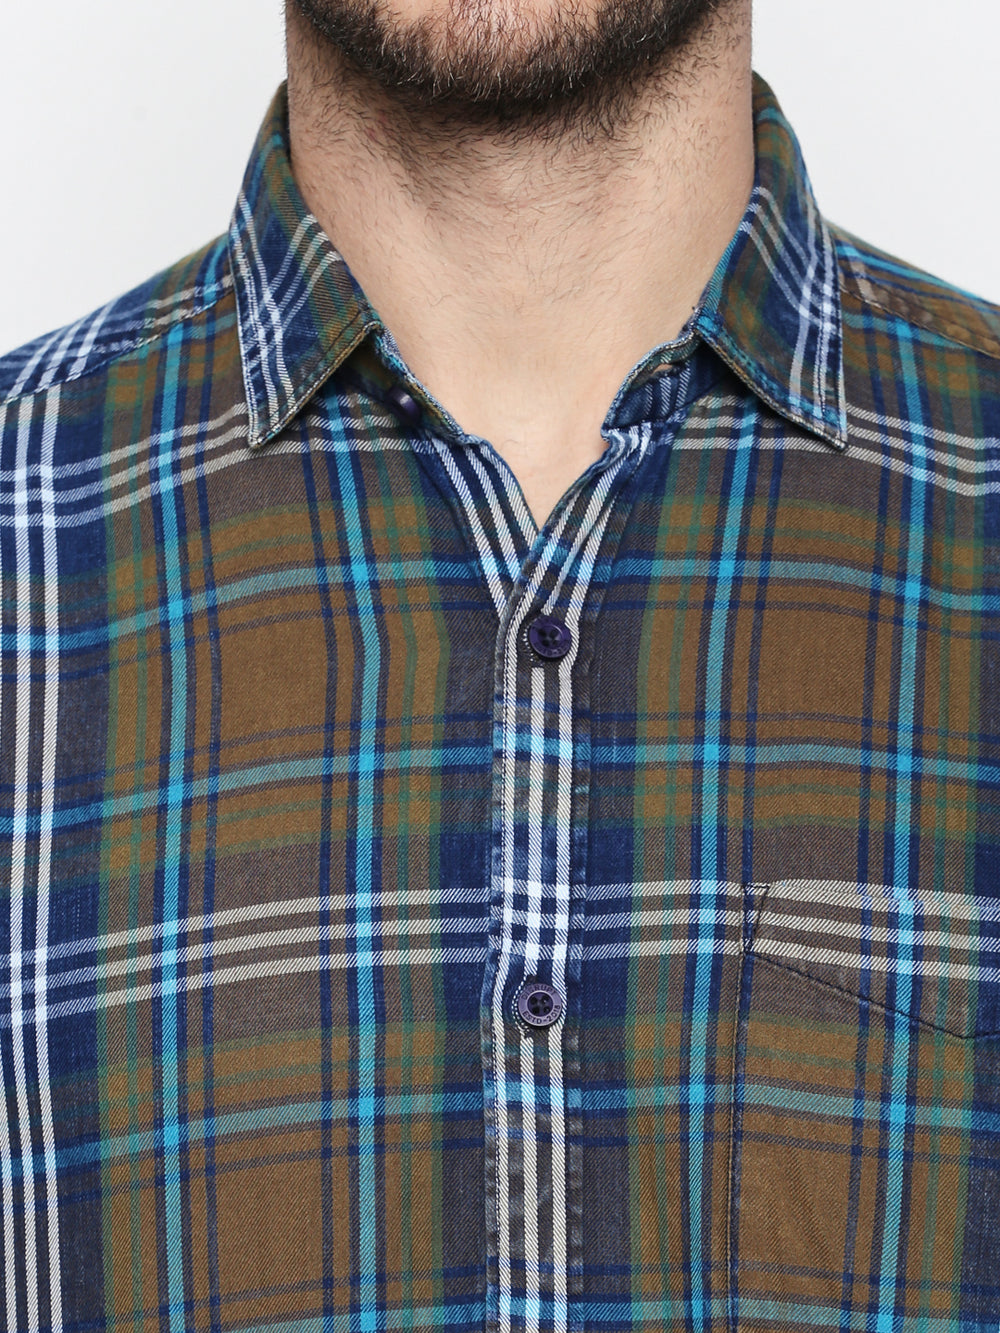 Disrupt Indigo Khaki-Navy-Turq Cotton Fabric Full Sleeve Checkered Shirt For Men's